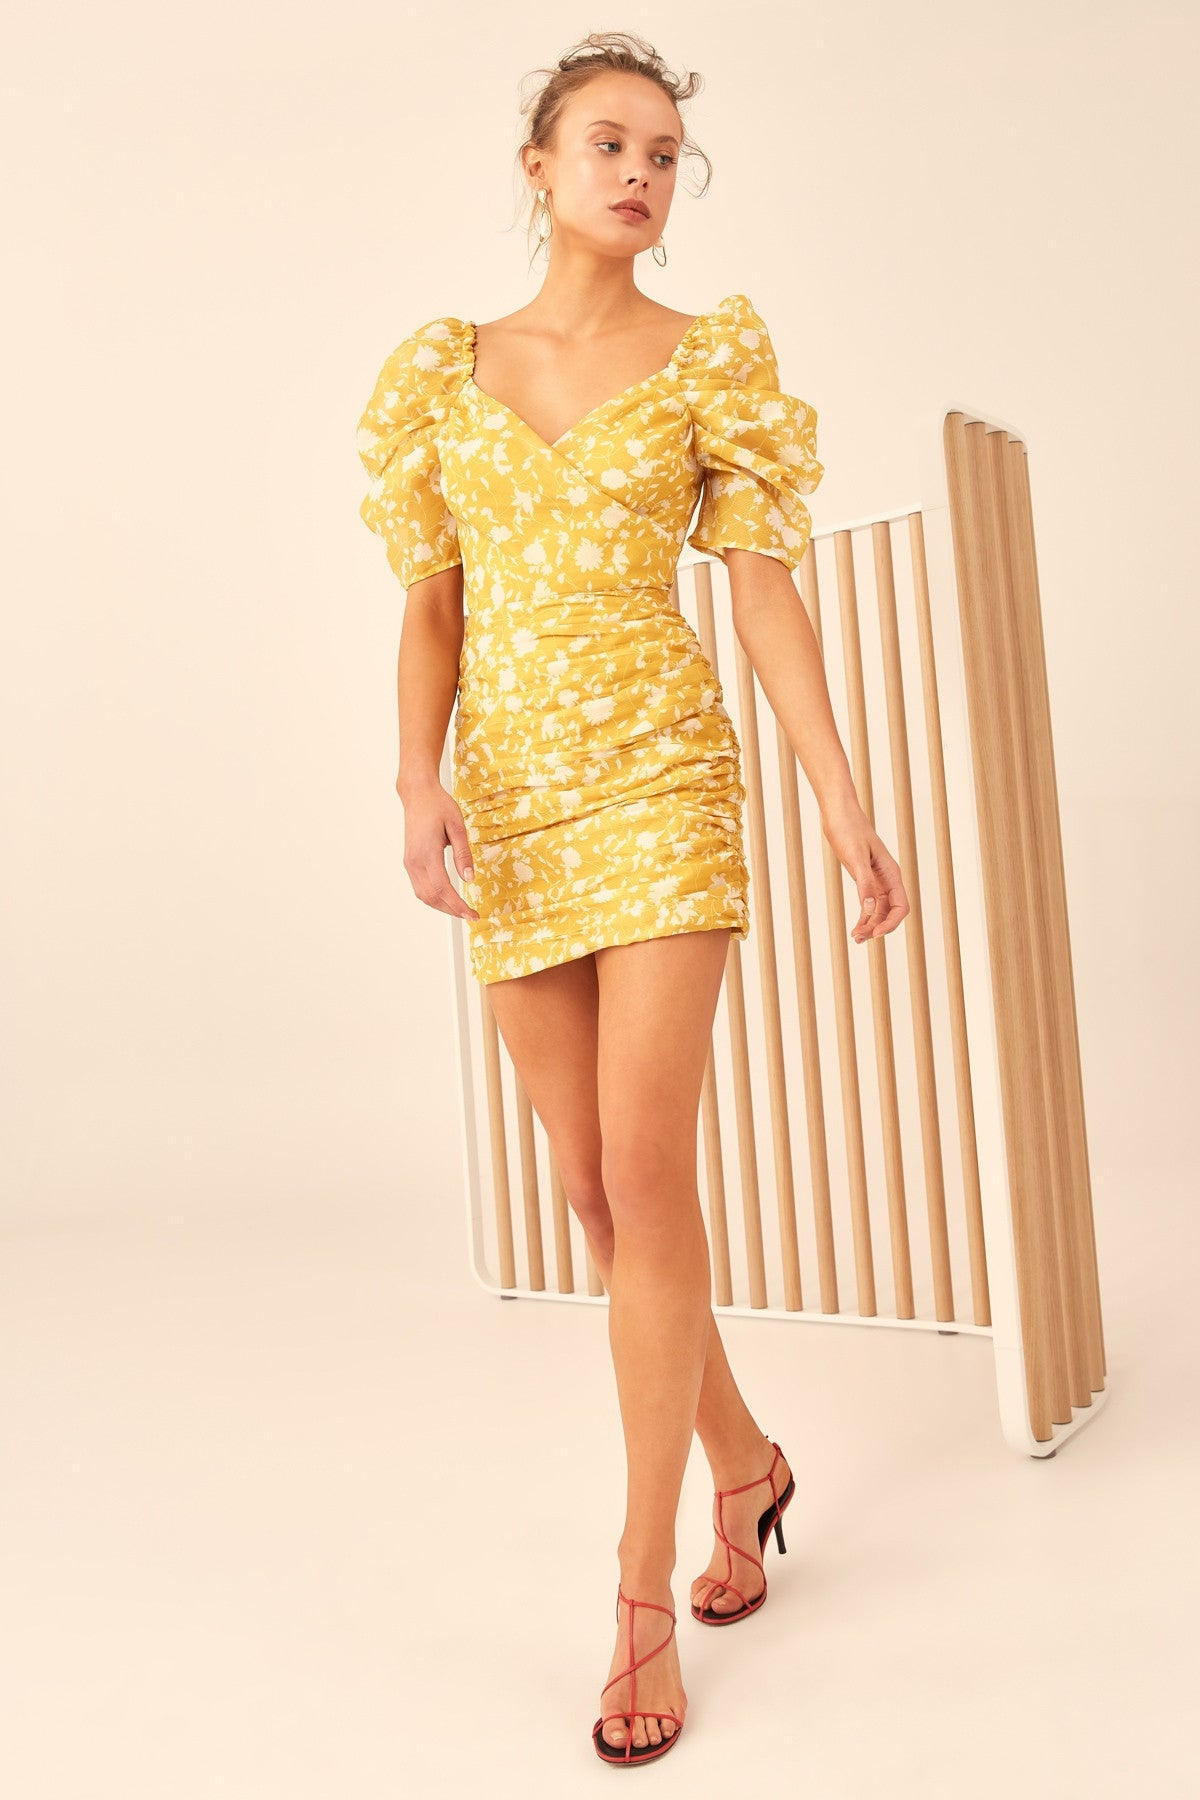 LOVE HATE MINI DRESS yellow floral